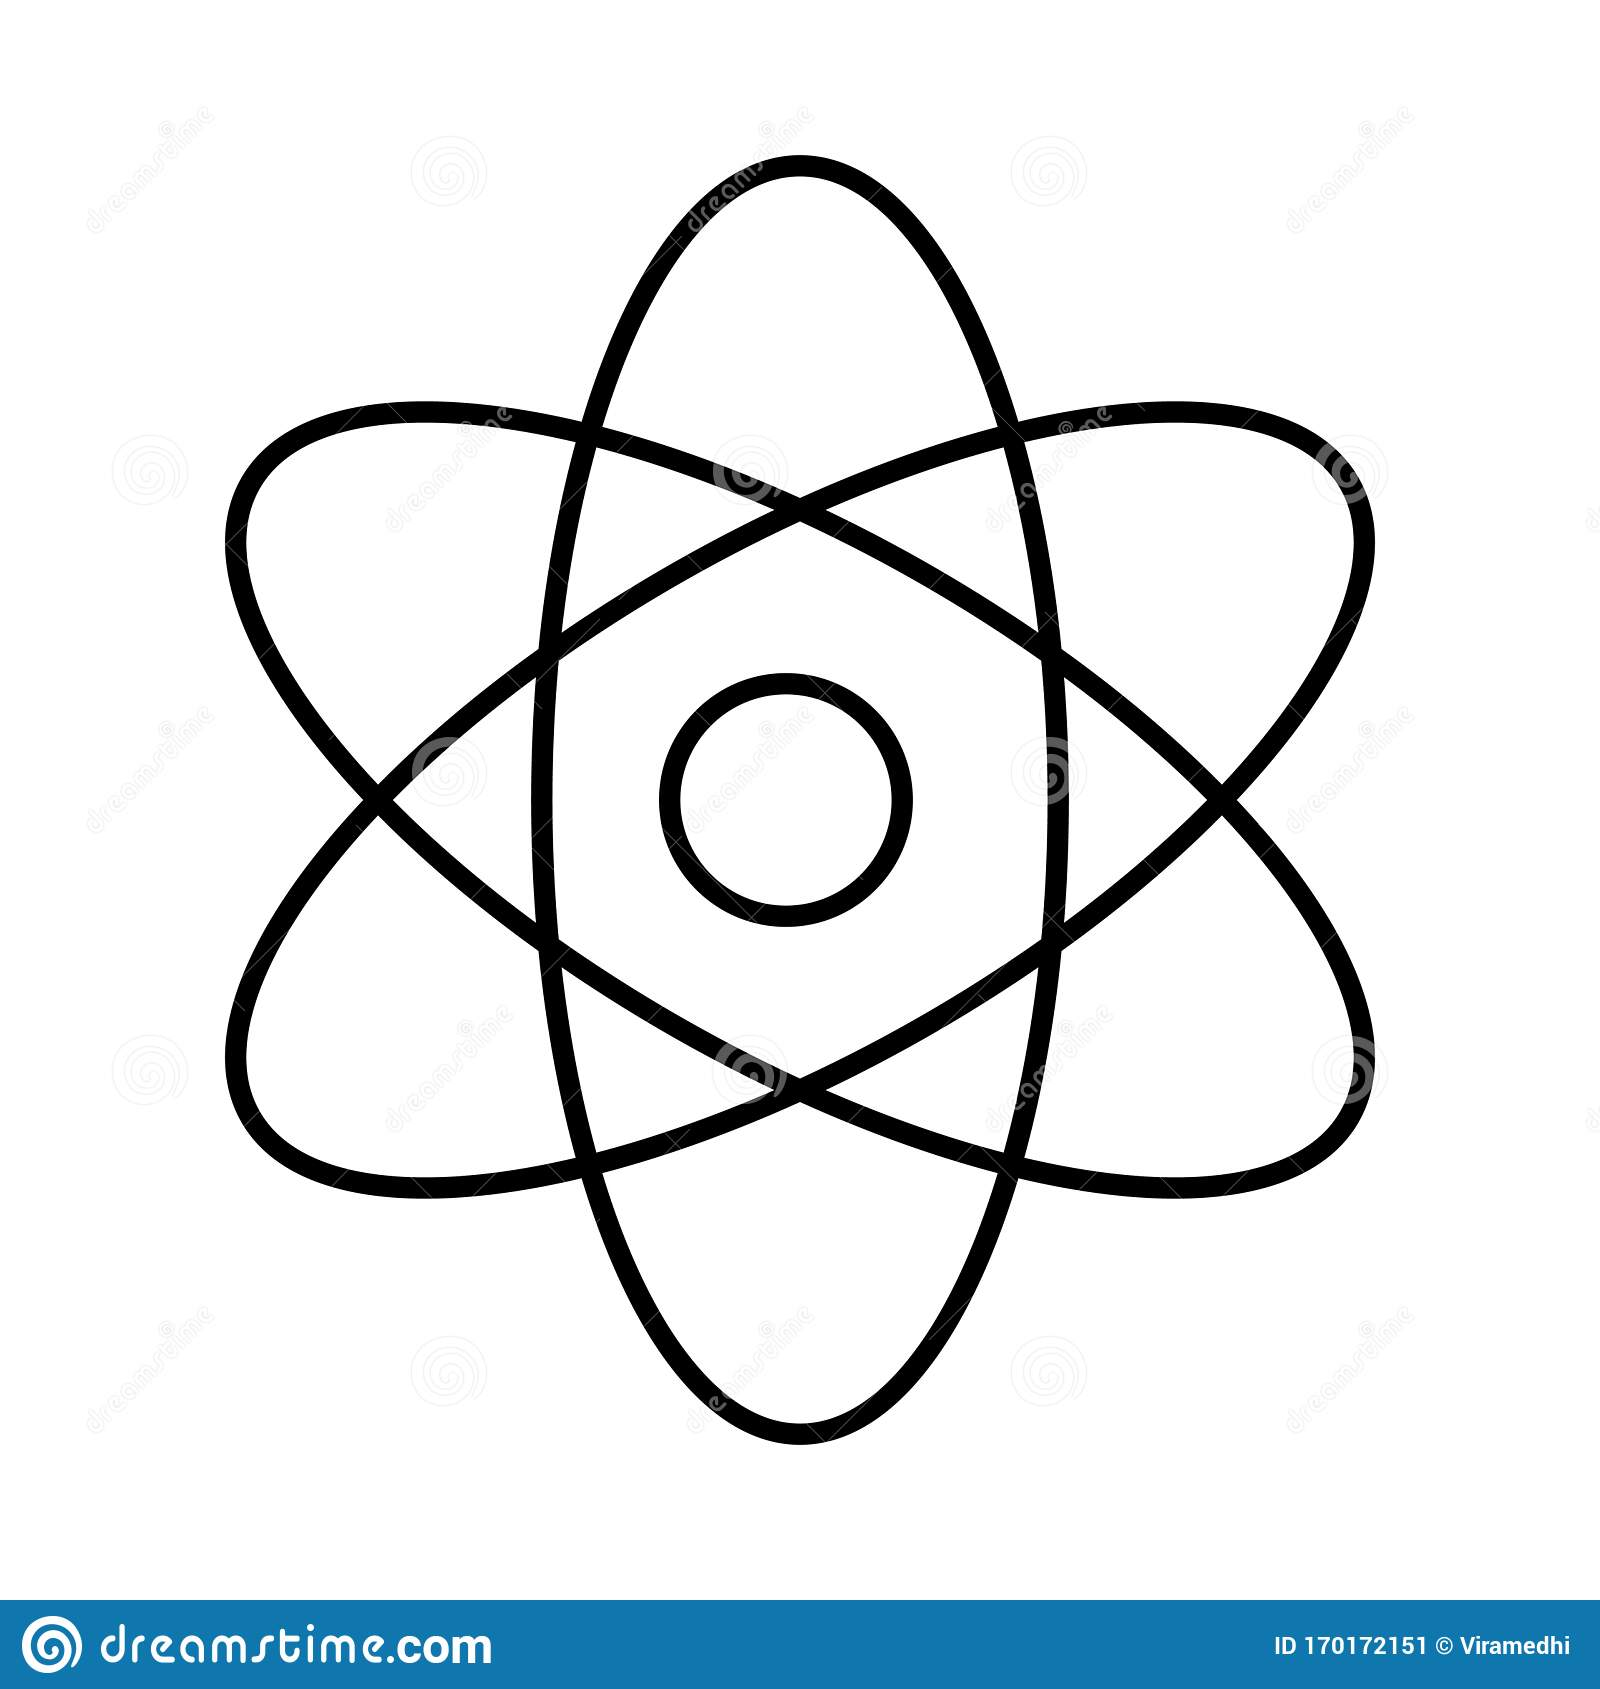 atom sign stock vector illustration of structure physics 170172151 https www dreamstime com atom structure studying science nuclear atomic scienctist chemistry sign energy symbol molecule physics technology image170172151